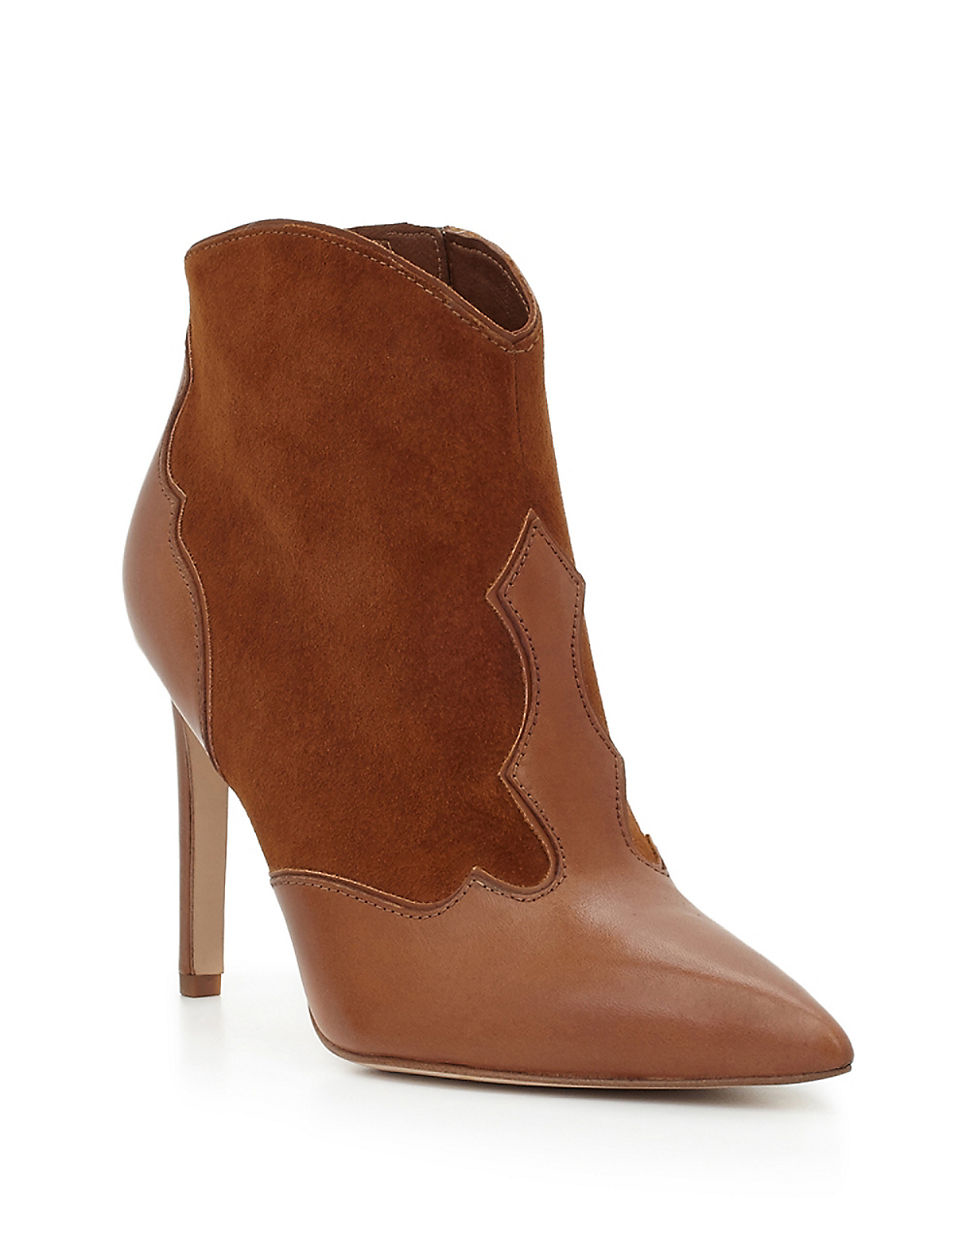 77d7dbbbd0f12f Lyst - Sam Edelman Bradley Leather And Suede Stiletto Booties in Brown